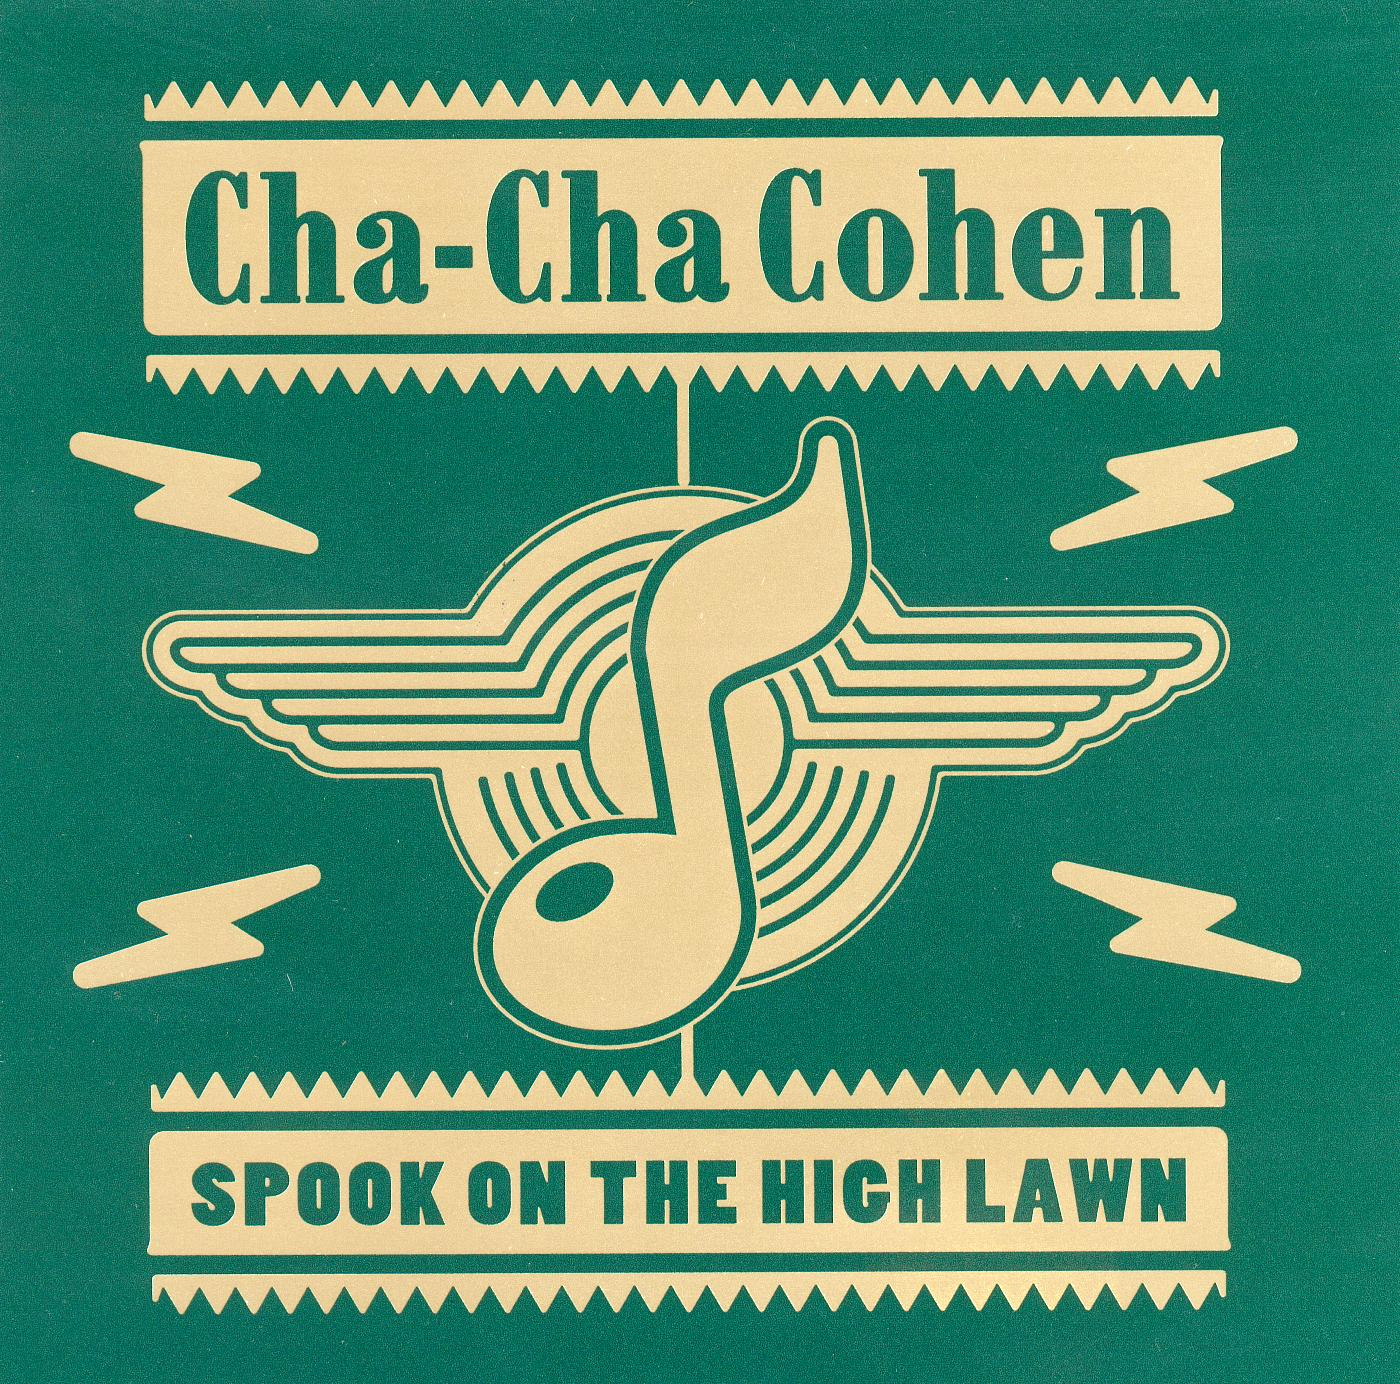 Cha Cha Cohen - Spook On The High Lawn - CD EP (1997) - Cha Cha Cohen